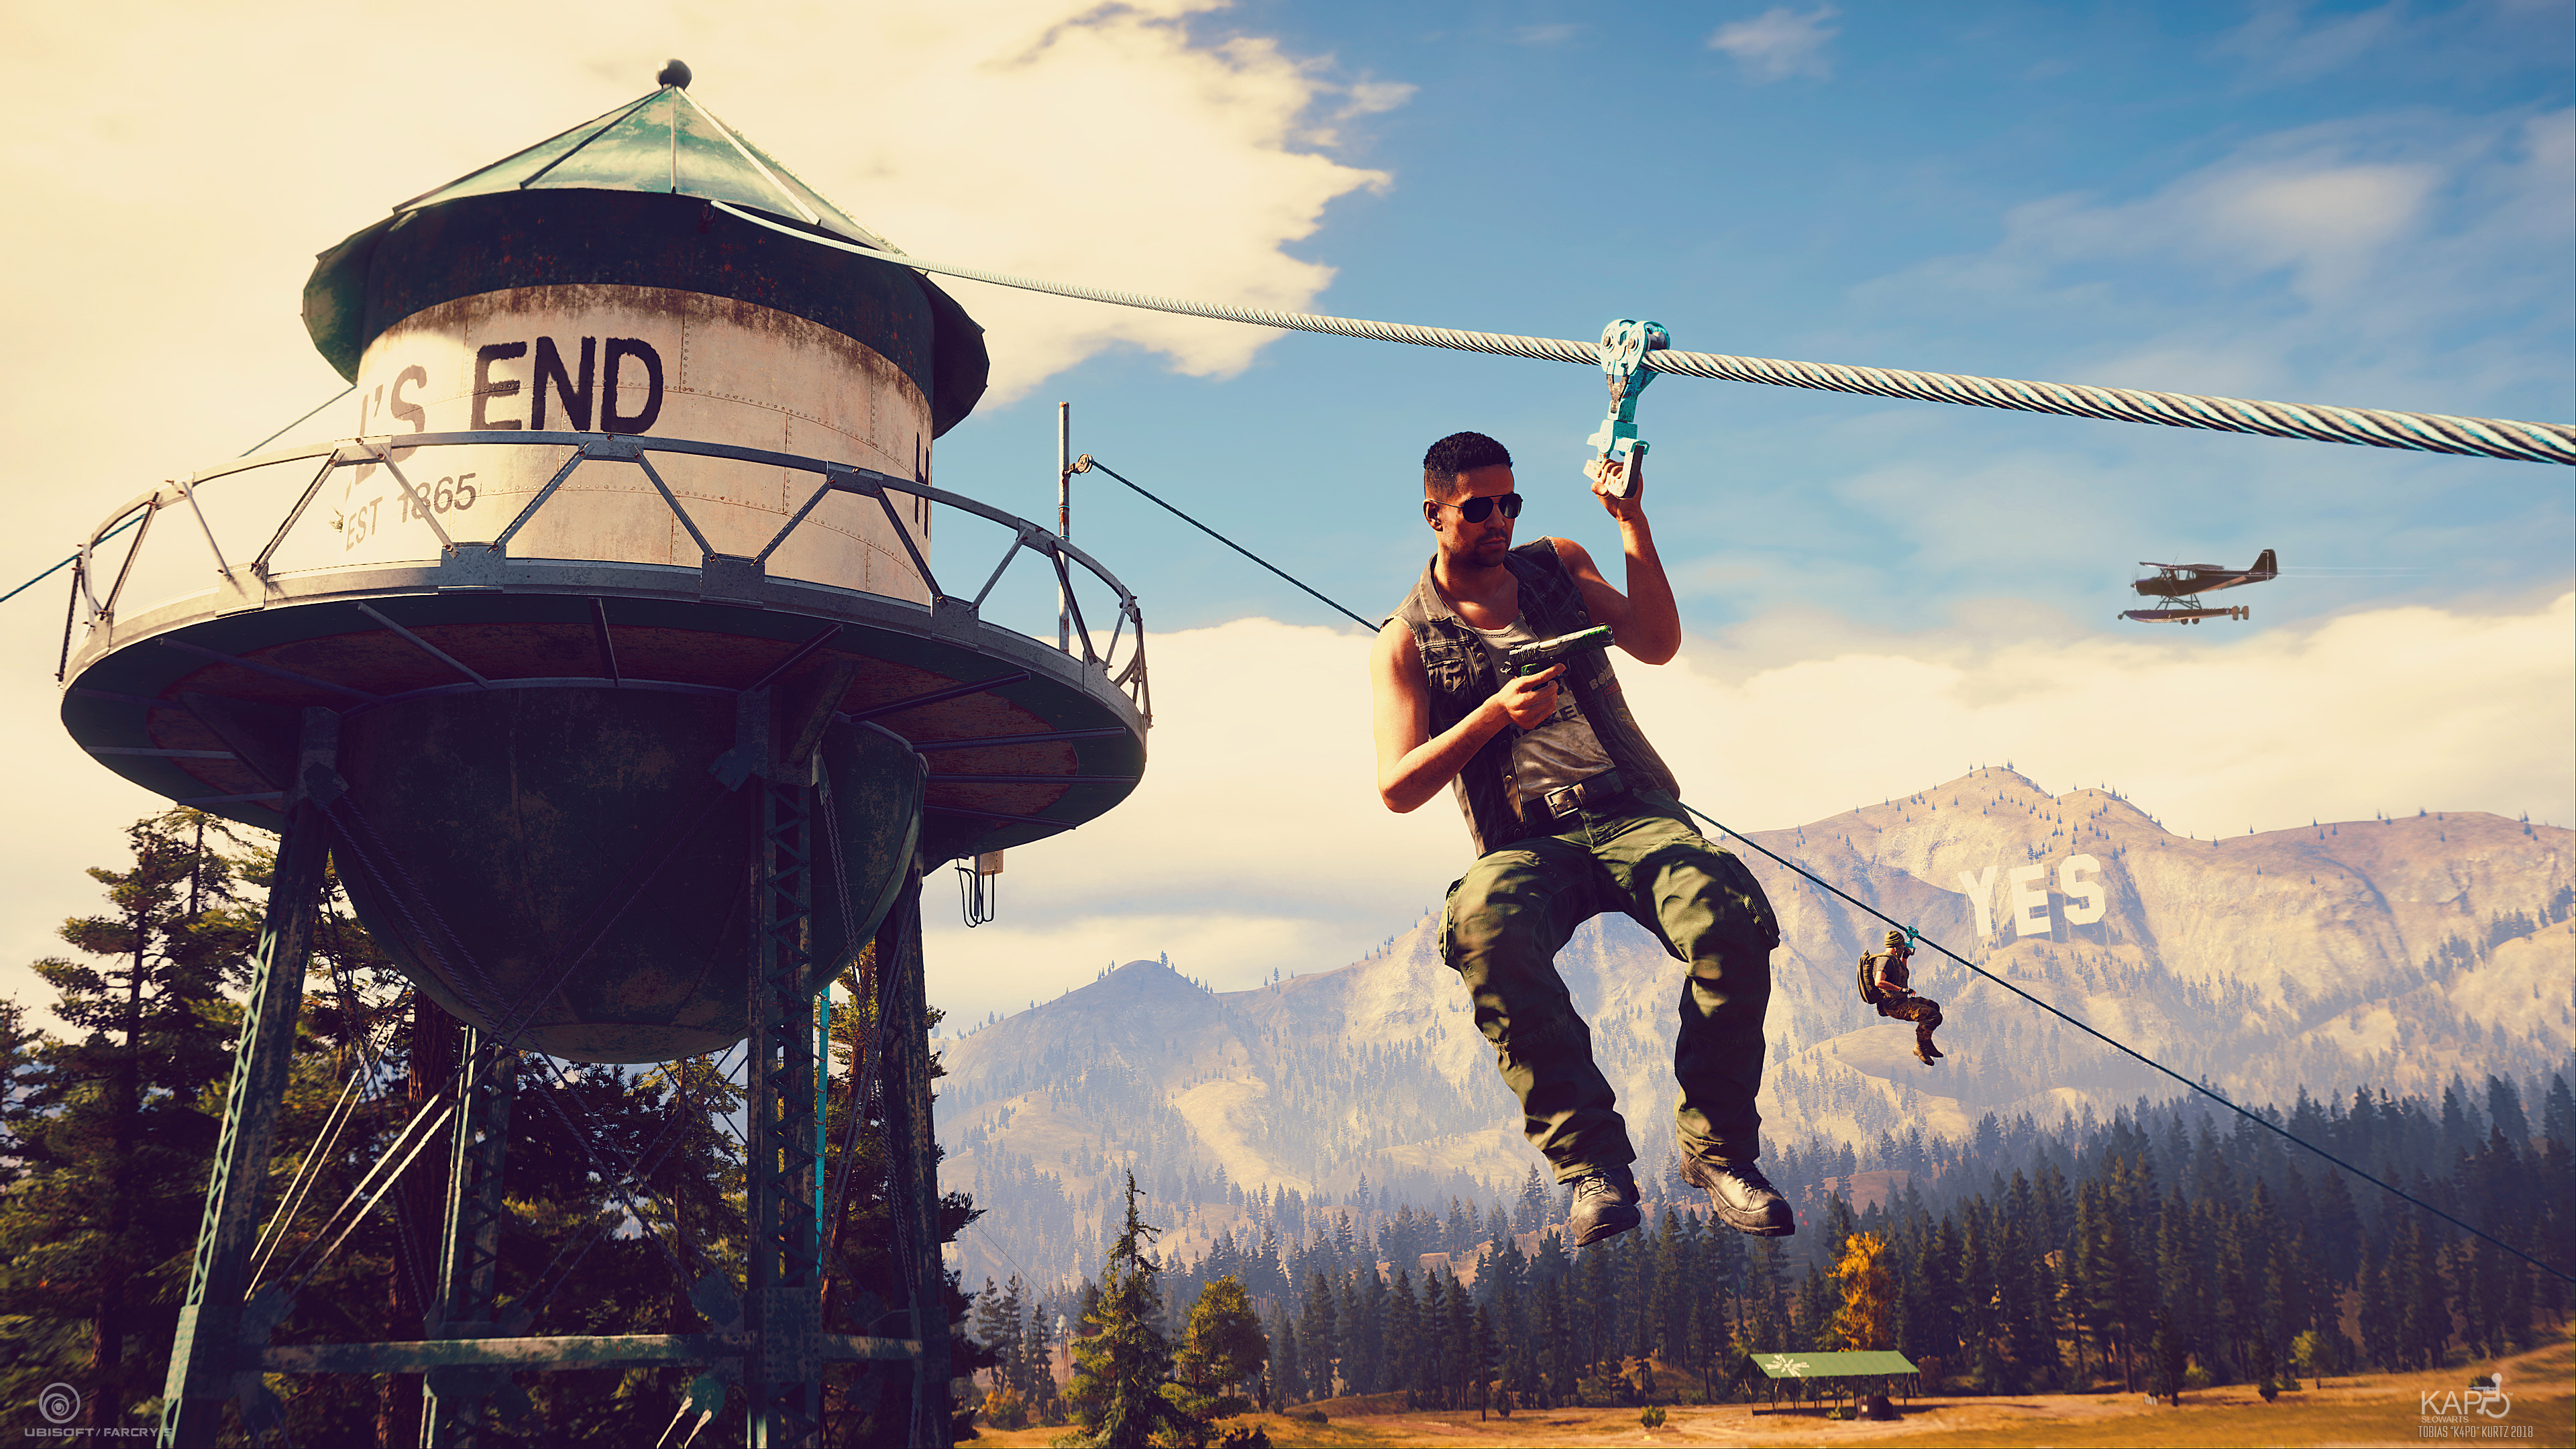 Far Cry 5 Wallpaper 4k: Far Cry 5 4k, HD Games, 4k Wallpapers, Images, Backgrounds